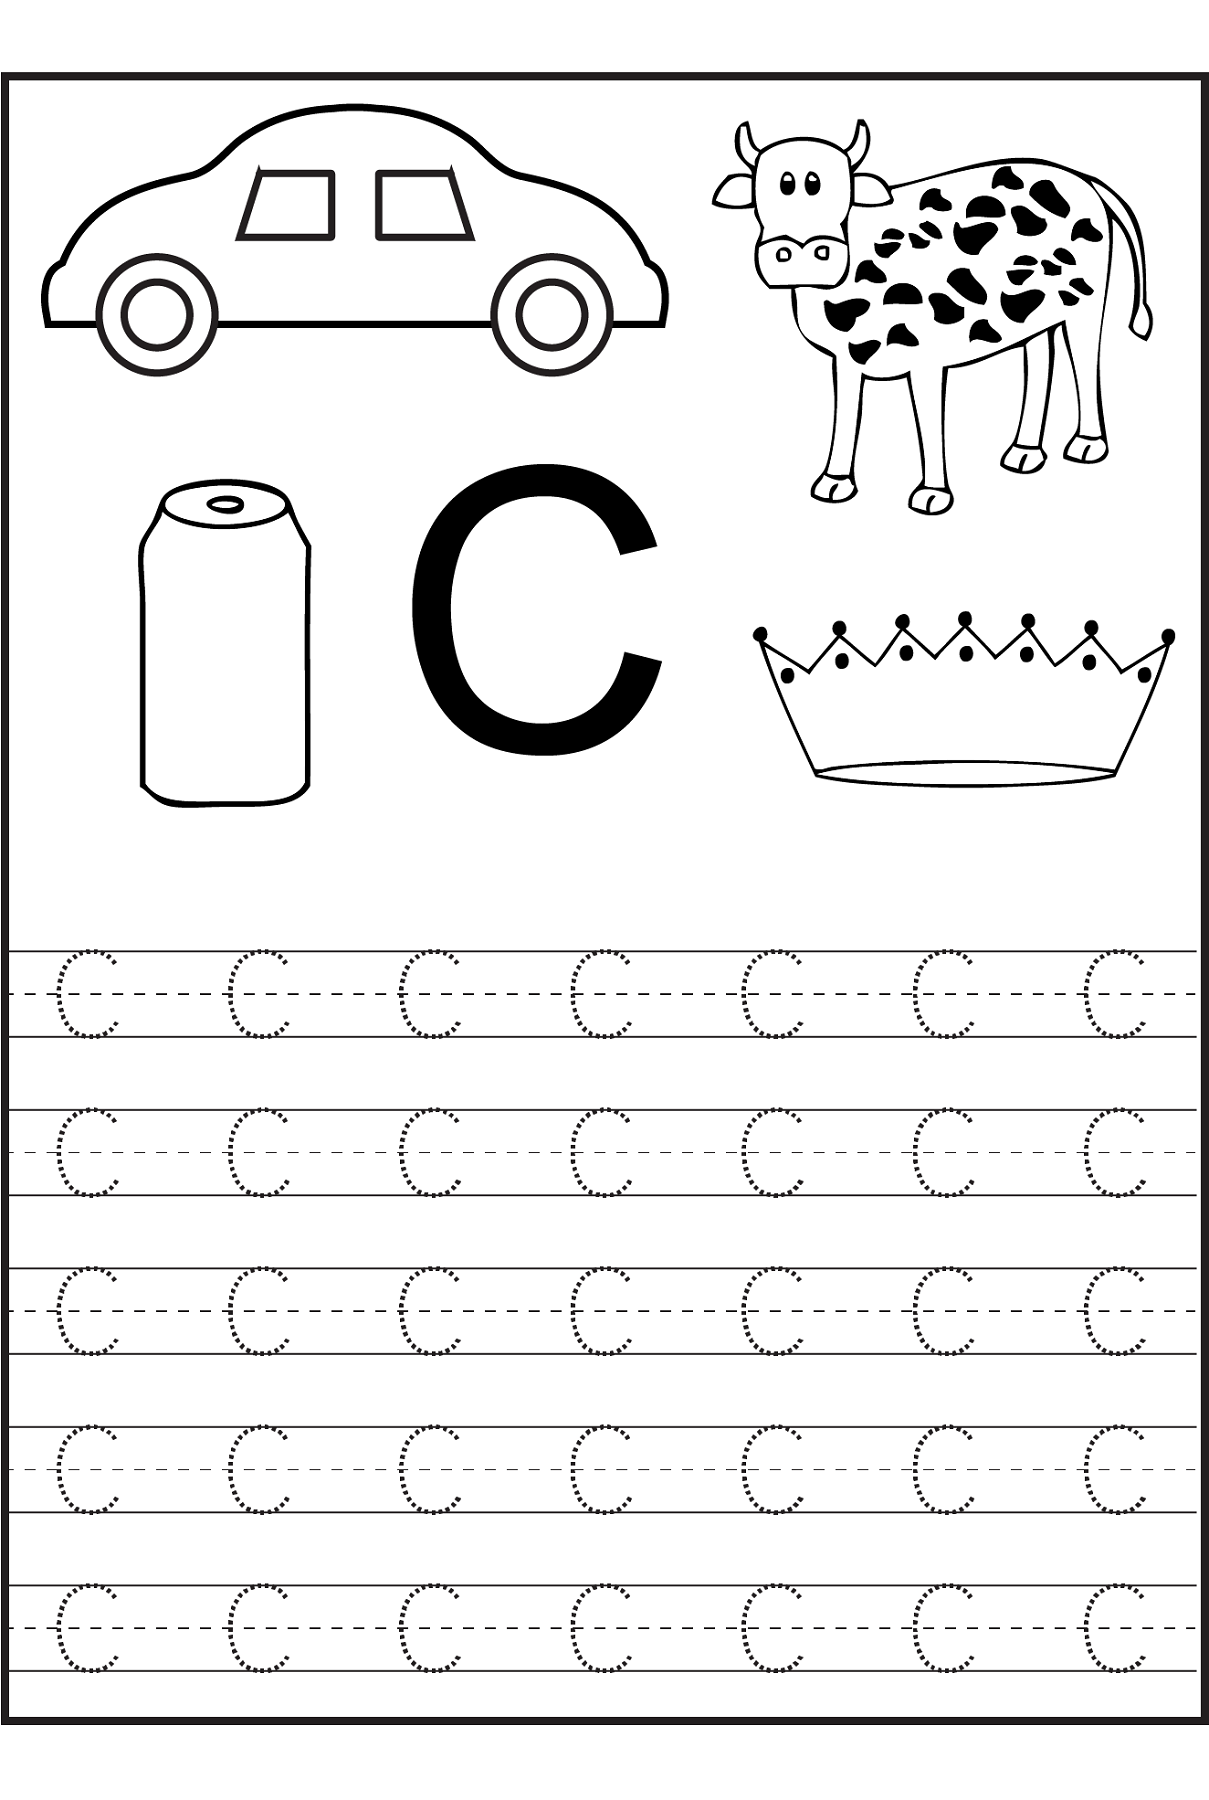 Letter C Tracing Worksheets For Preschoolers Awesome 82